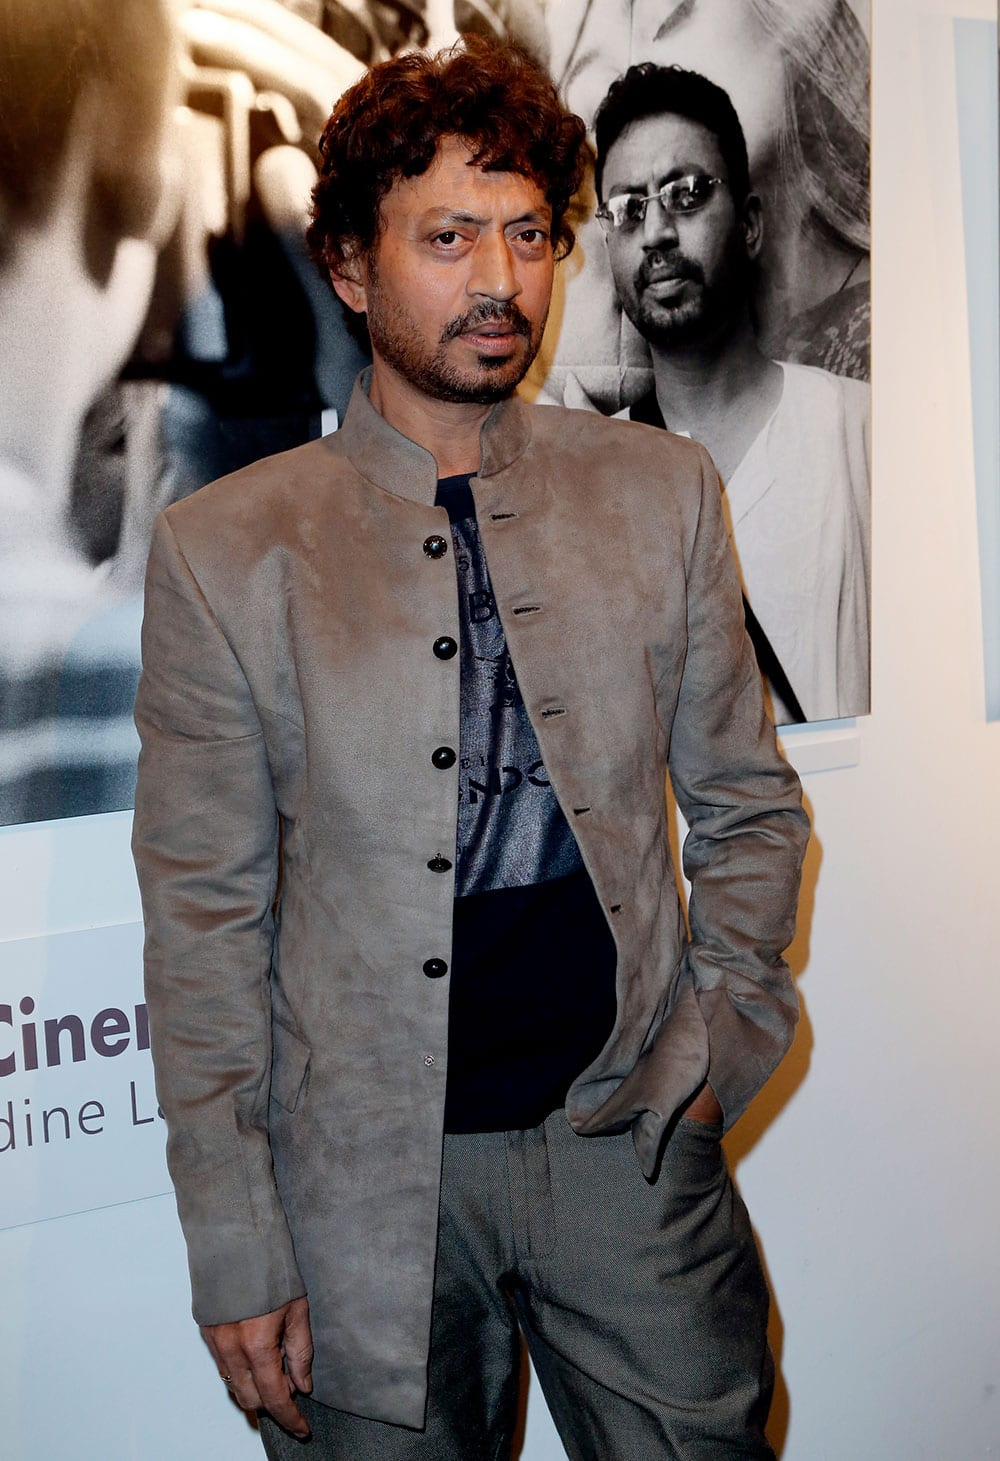 Irrfan Khan poses for photographers as he arrives for Extravagant India!, the international Indian Film Festival in Paris.